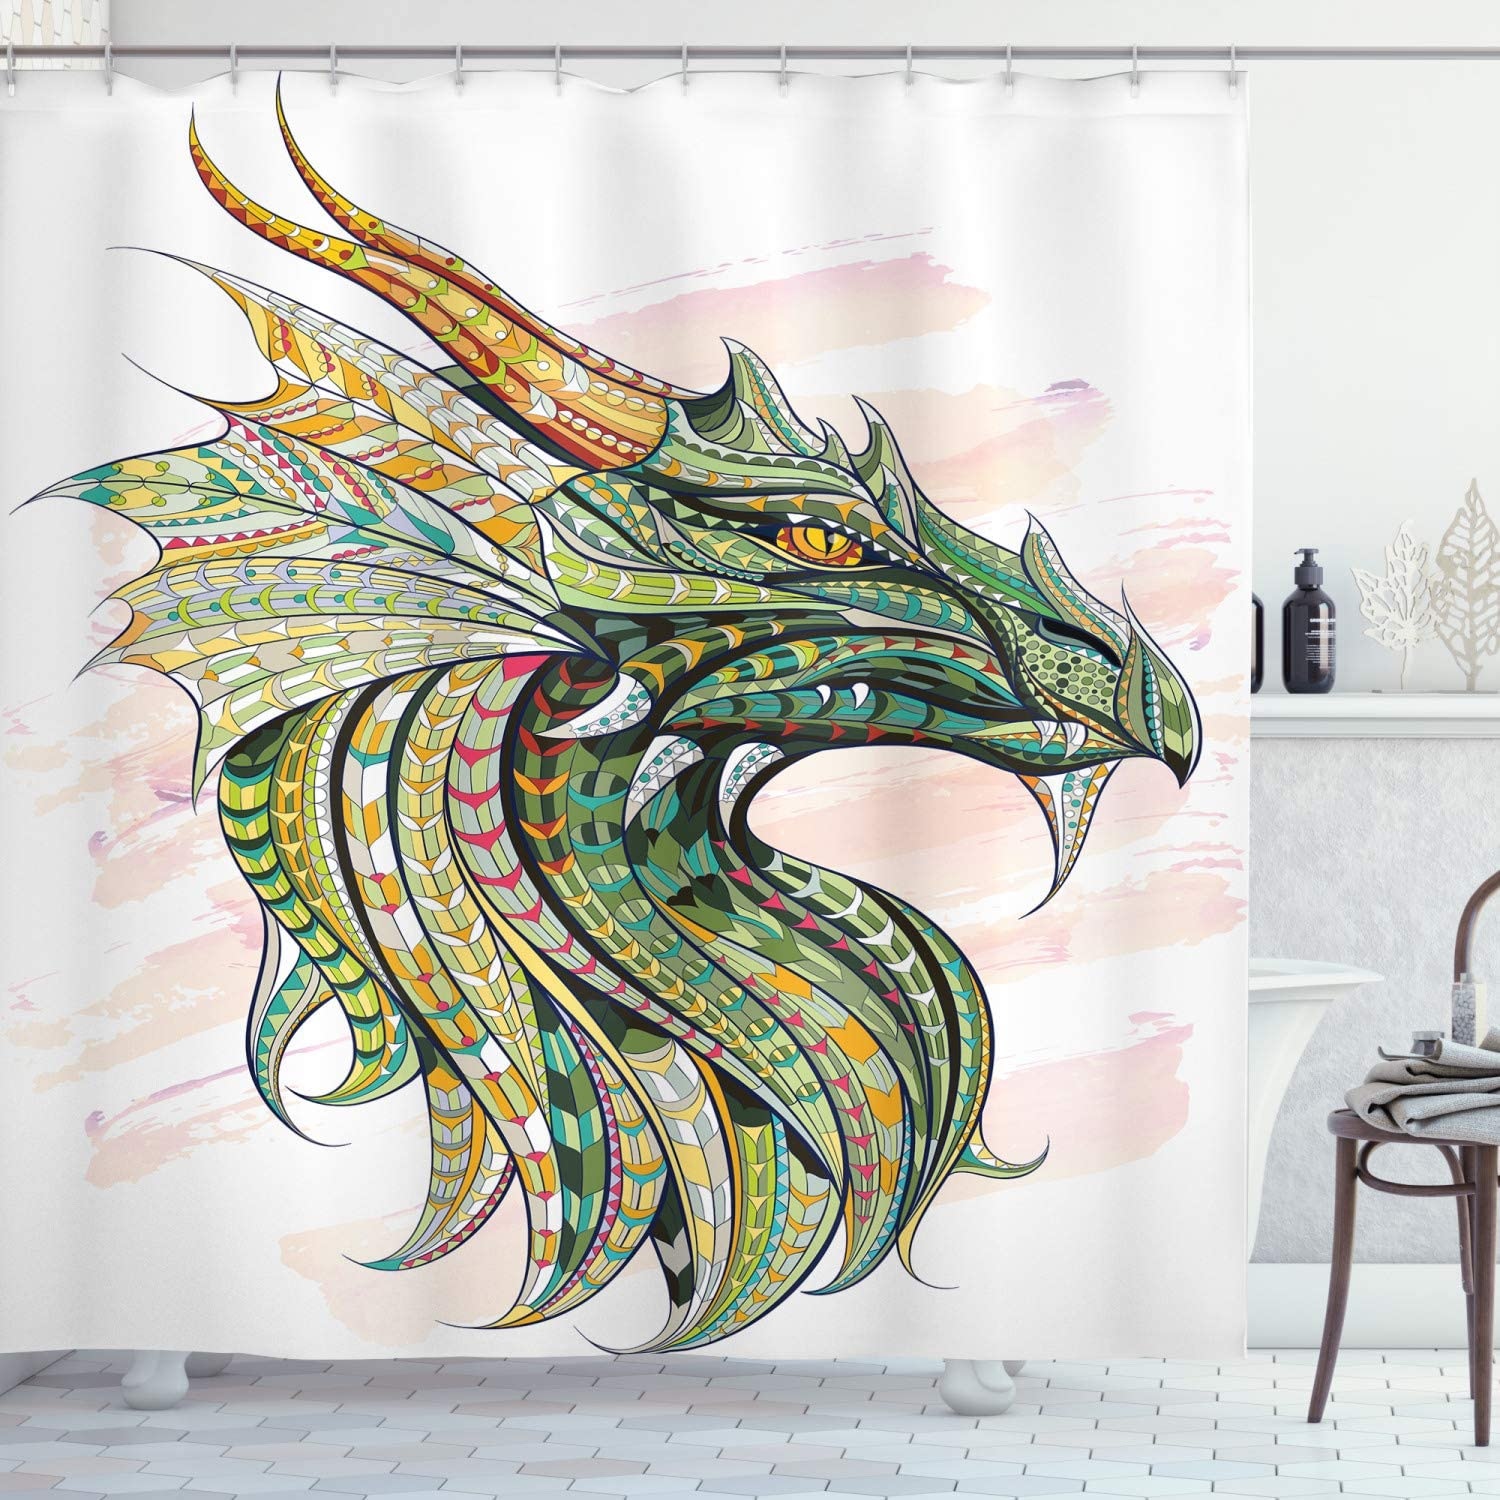 "Ambesonne Celtic Shower Curtain, Head of Dragon with Ornate Effects on Grunge Backdrop Mythical, Cloth Fabric Bathroom Decor Set with Hooks, 75"" Long, White Green"